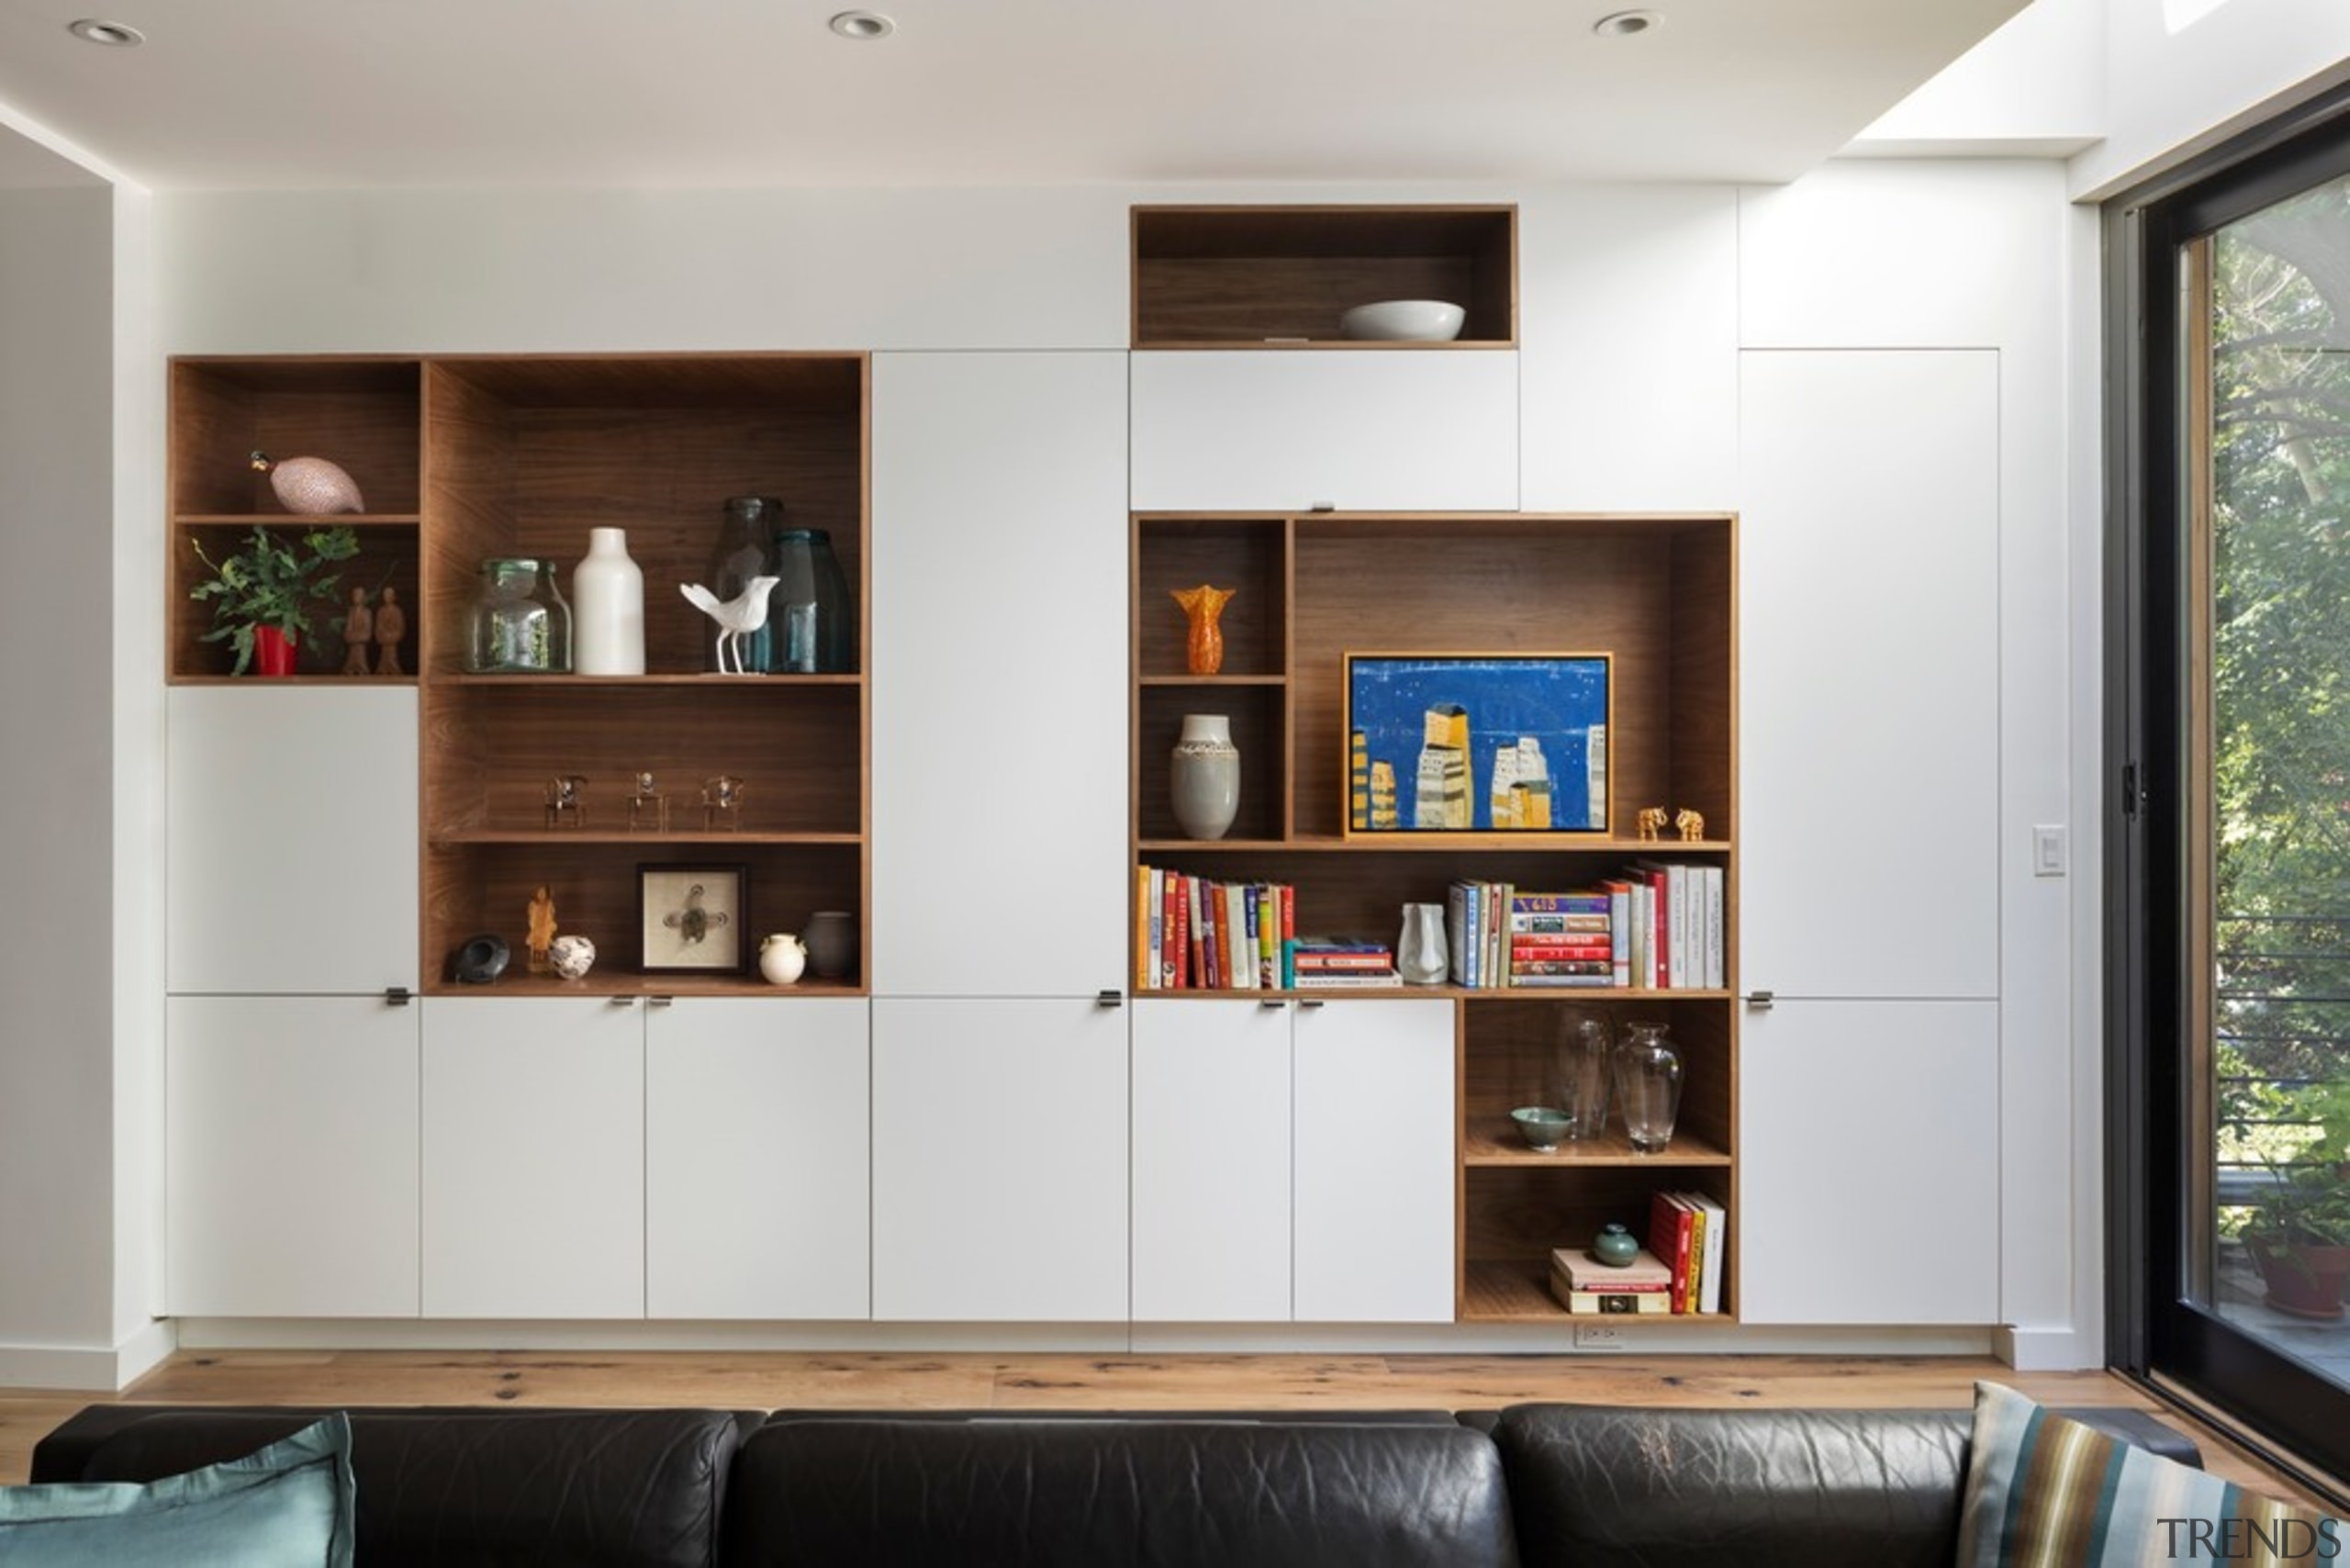 Living room 2 - architecture | bookcase | architecture, bookcase, building, cabinetry, ceiling, couch, floor, furniture, home, house, interior design, living room, room, shelf, shelving, table, wall, wood, white